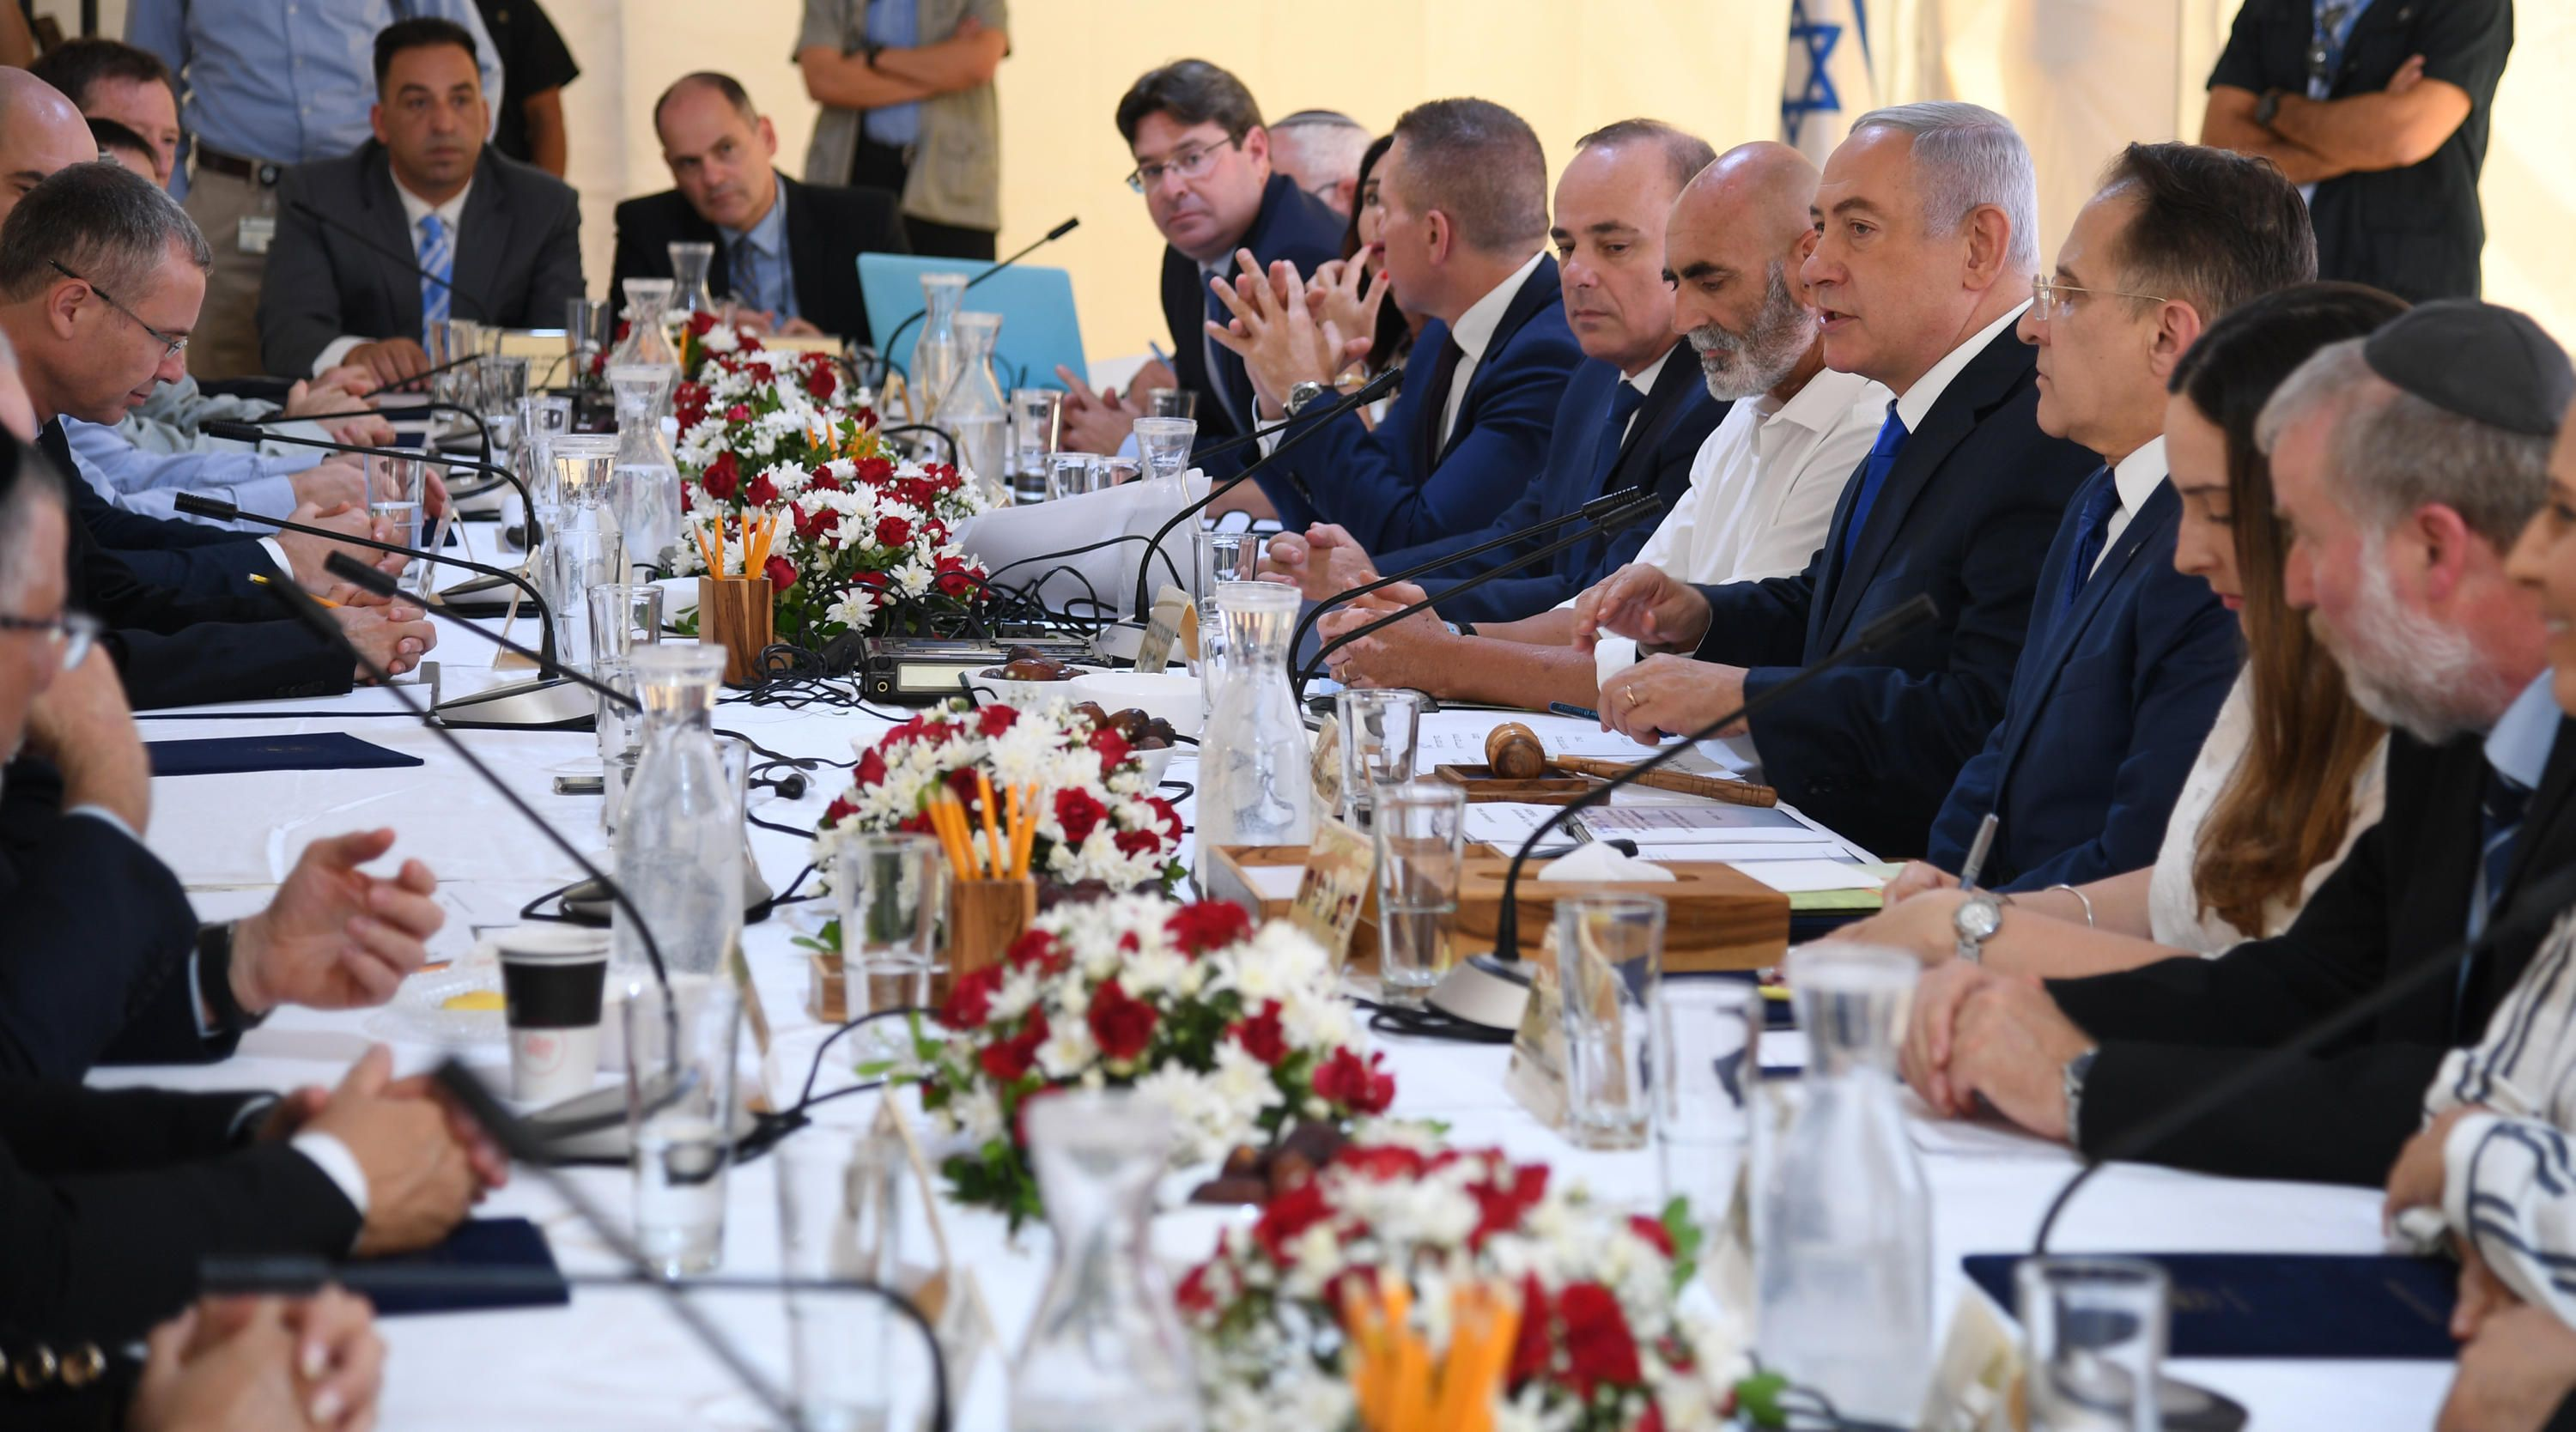 LIVEBLOG: Netanyahu says 'deal of the century to be revealed days after elections'